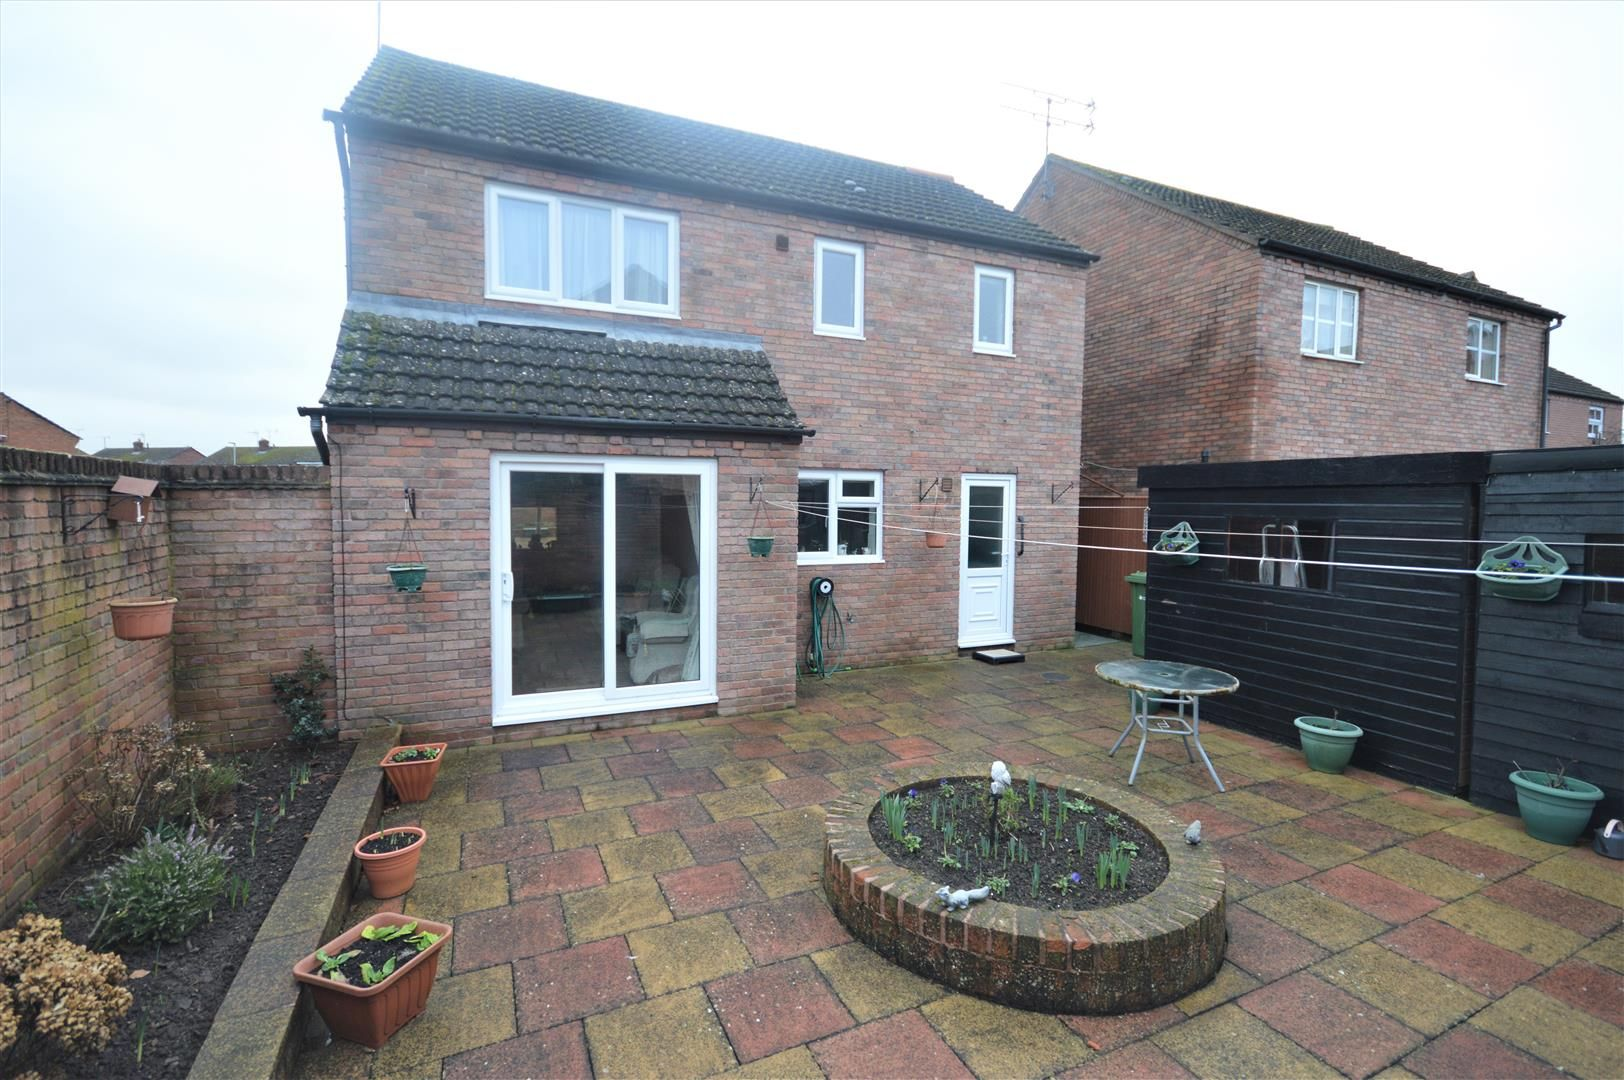 3 bed detached for sale in Leominster  - Property Image 11